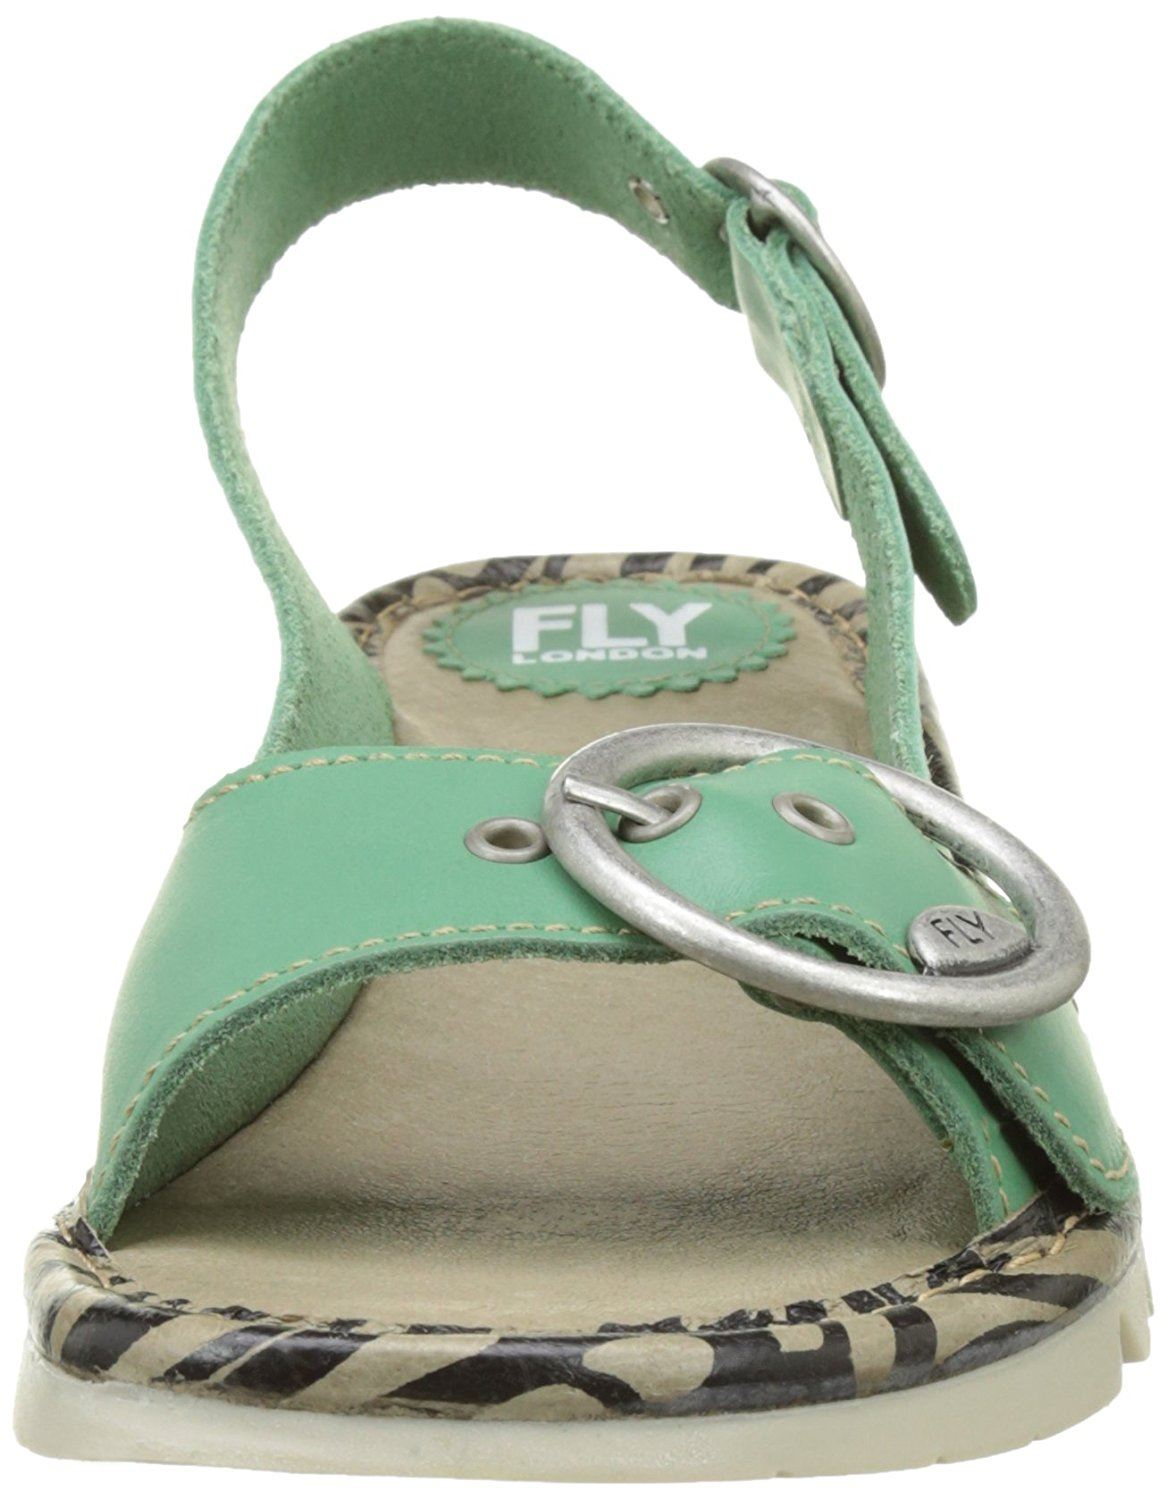 Fly-London-Ladies-TRAM723FLY-Lo-Wedge-Slingback-Summer-Sandals-Leather thumbnail 53